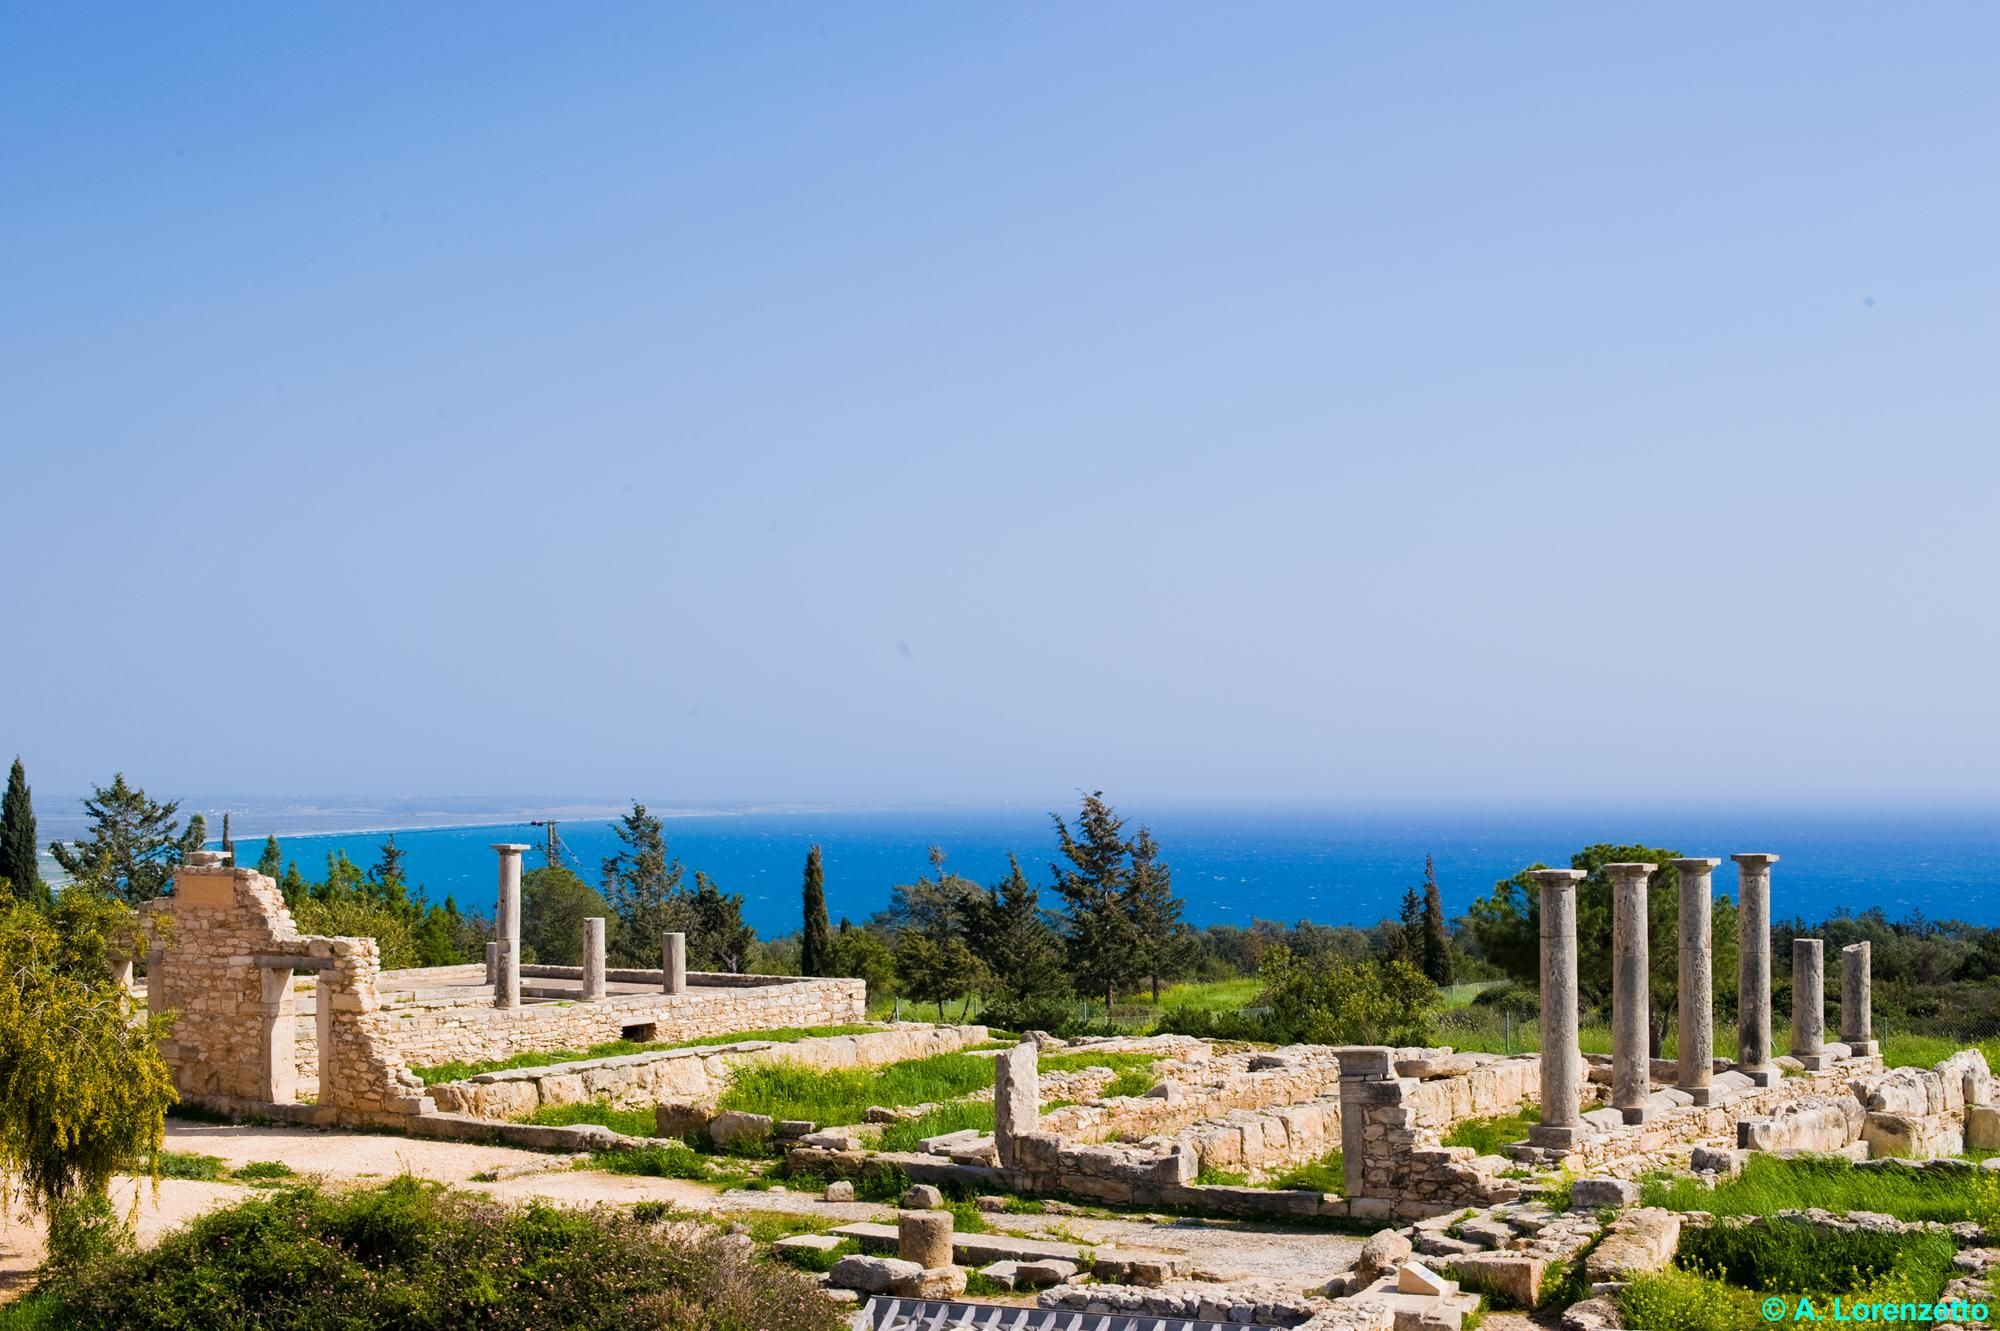 """Cyprus Lemesos """"Sanctuary of Apollon Ylatis"""". Apollon Ylatis, god of the woodland, was the protector of Kourion city-kingdom. He was worshipped here from the 8th century BC to the 4th century AD. His sanctuary was an important religious centre."""